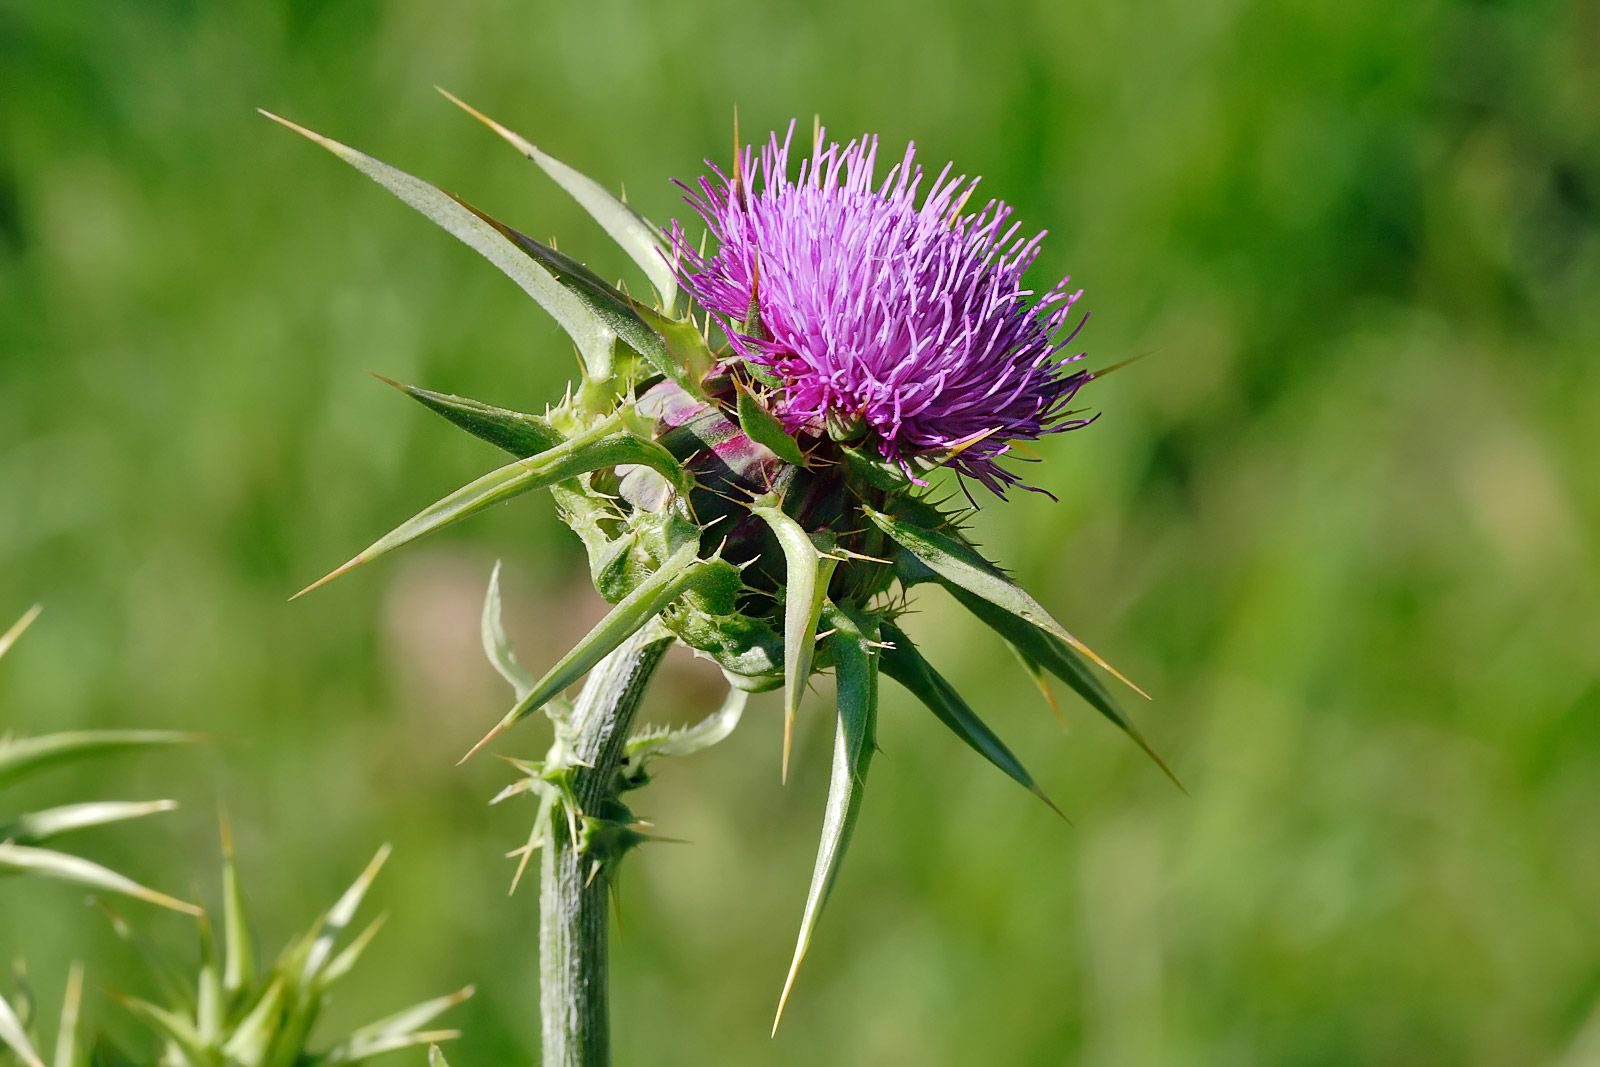 http://upload.wikimedia.org/wikipedia/commons/9/9f/Milk_thistle_flowerhead.jpg